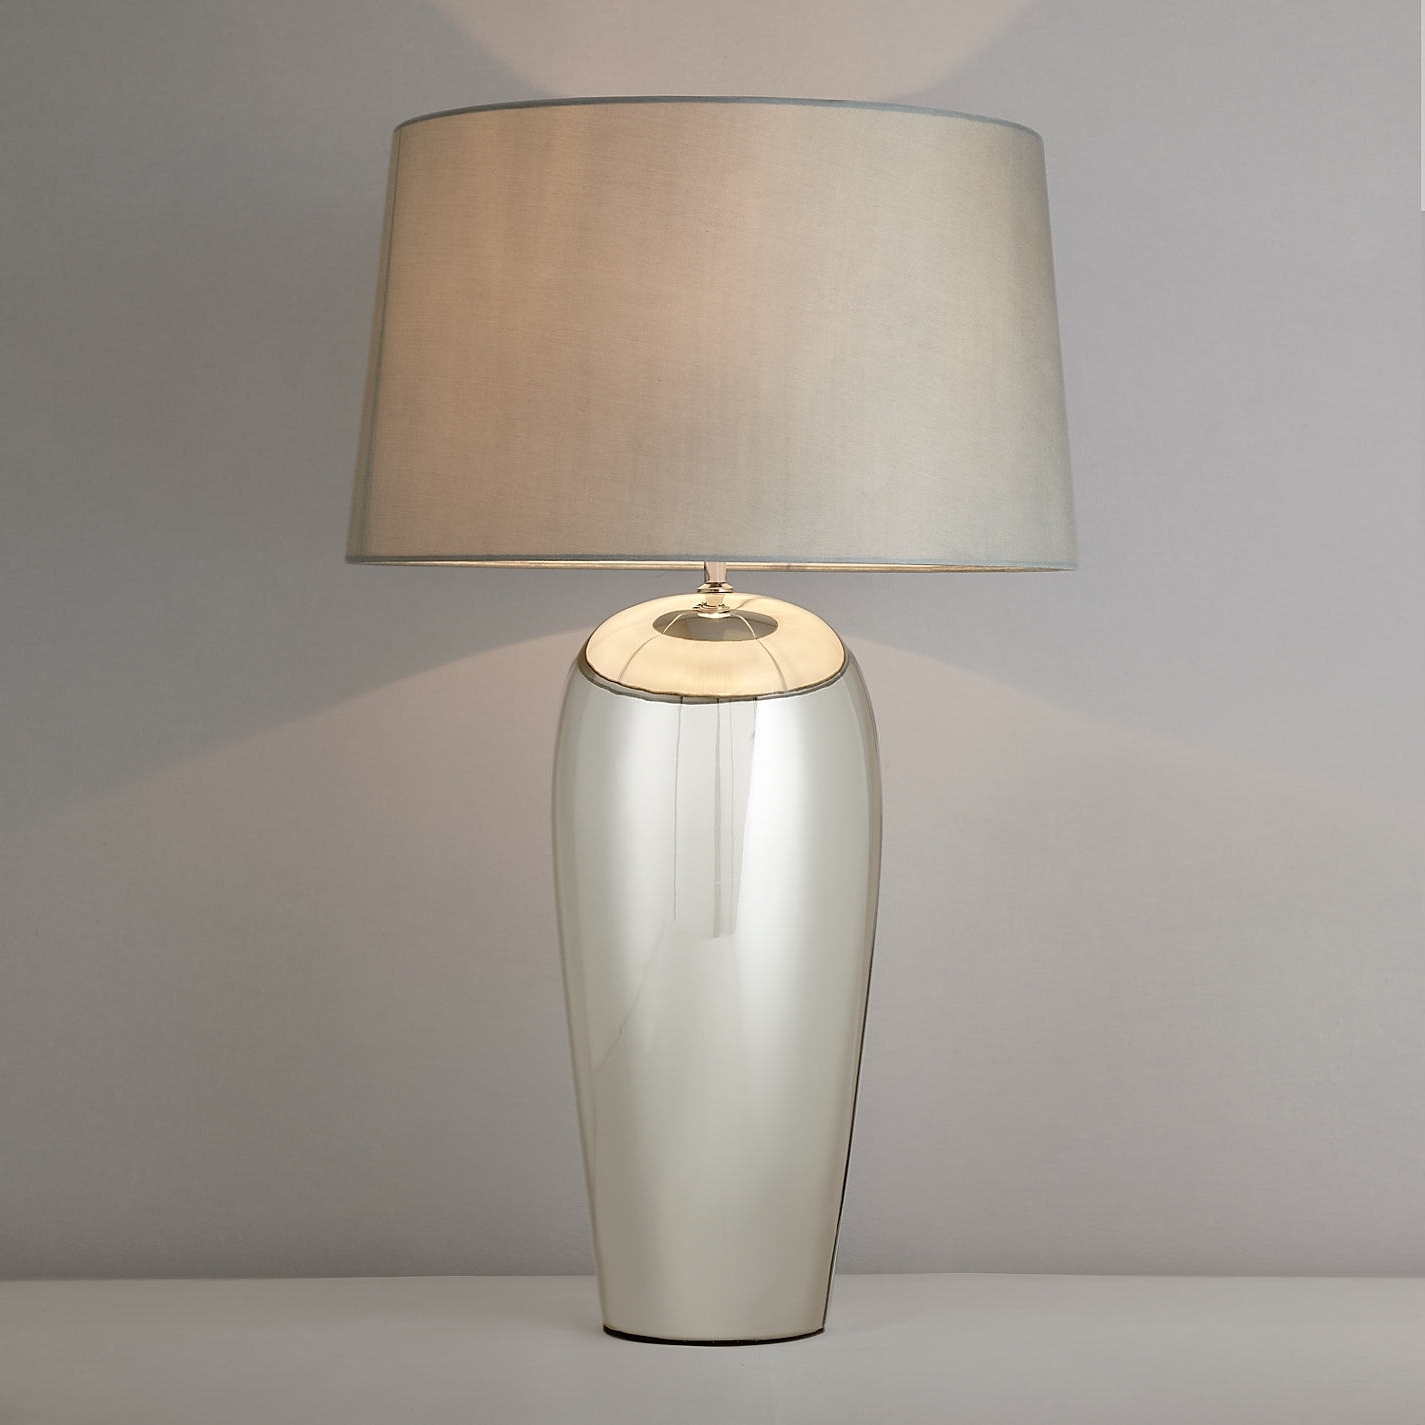 Gallery John Lewis Table Lamps – Badotcom Inside Well Known John Lewis Table Lamps For Living Room (Gallery 7 of 15)